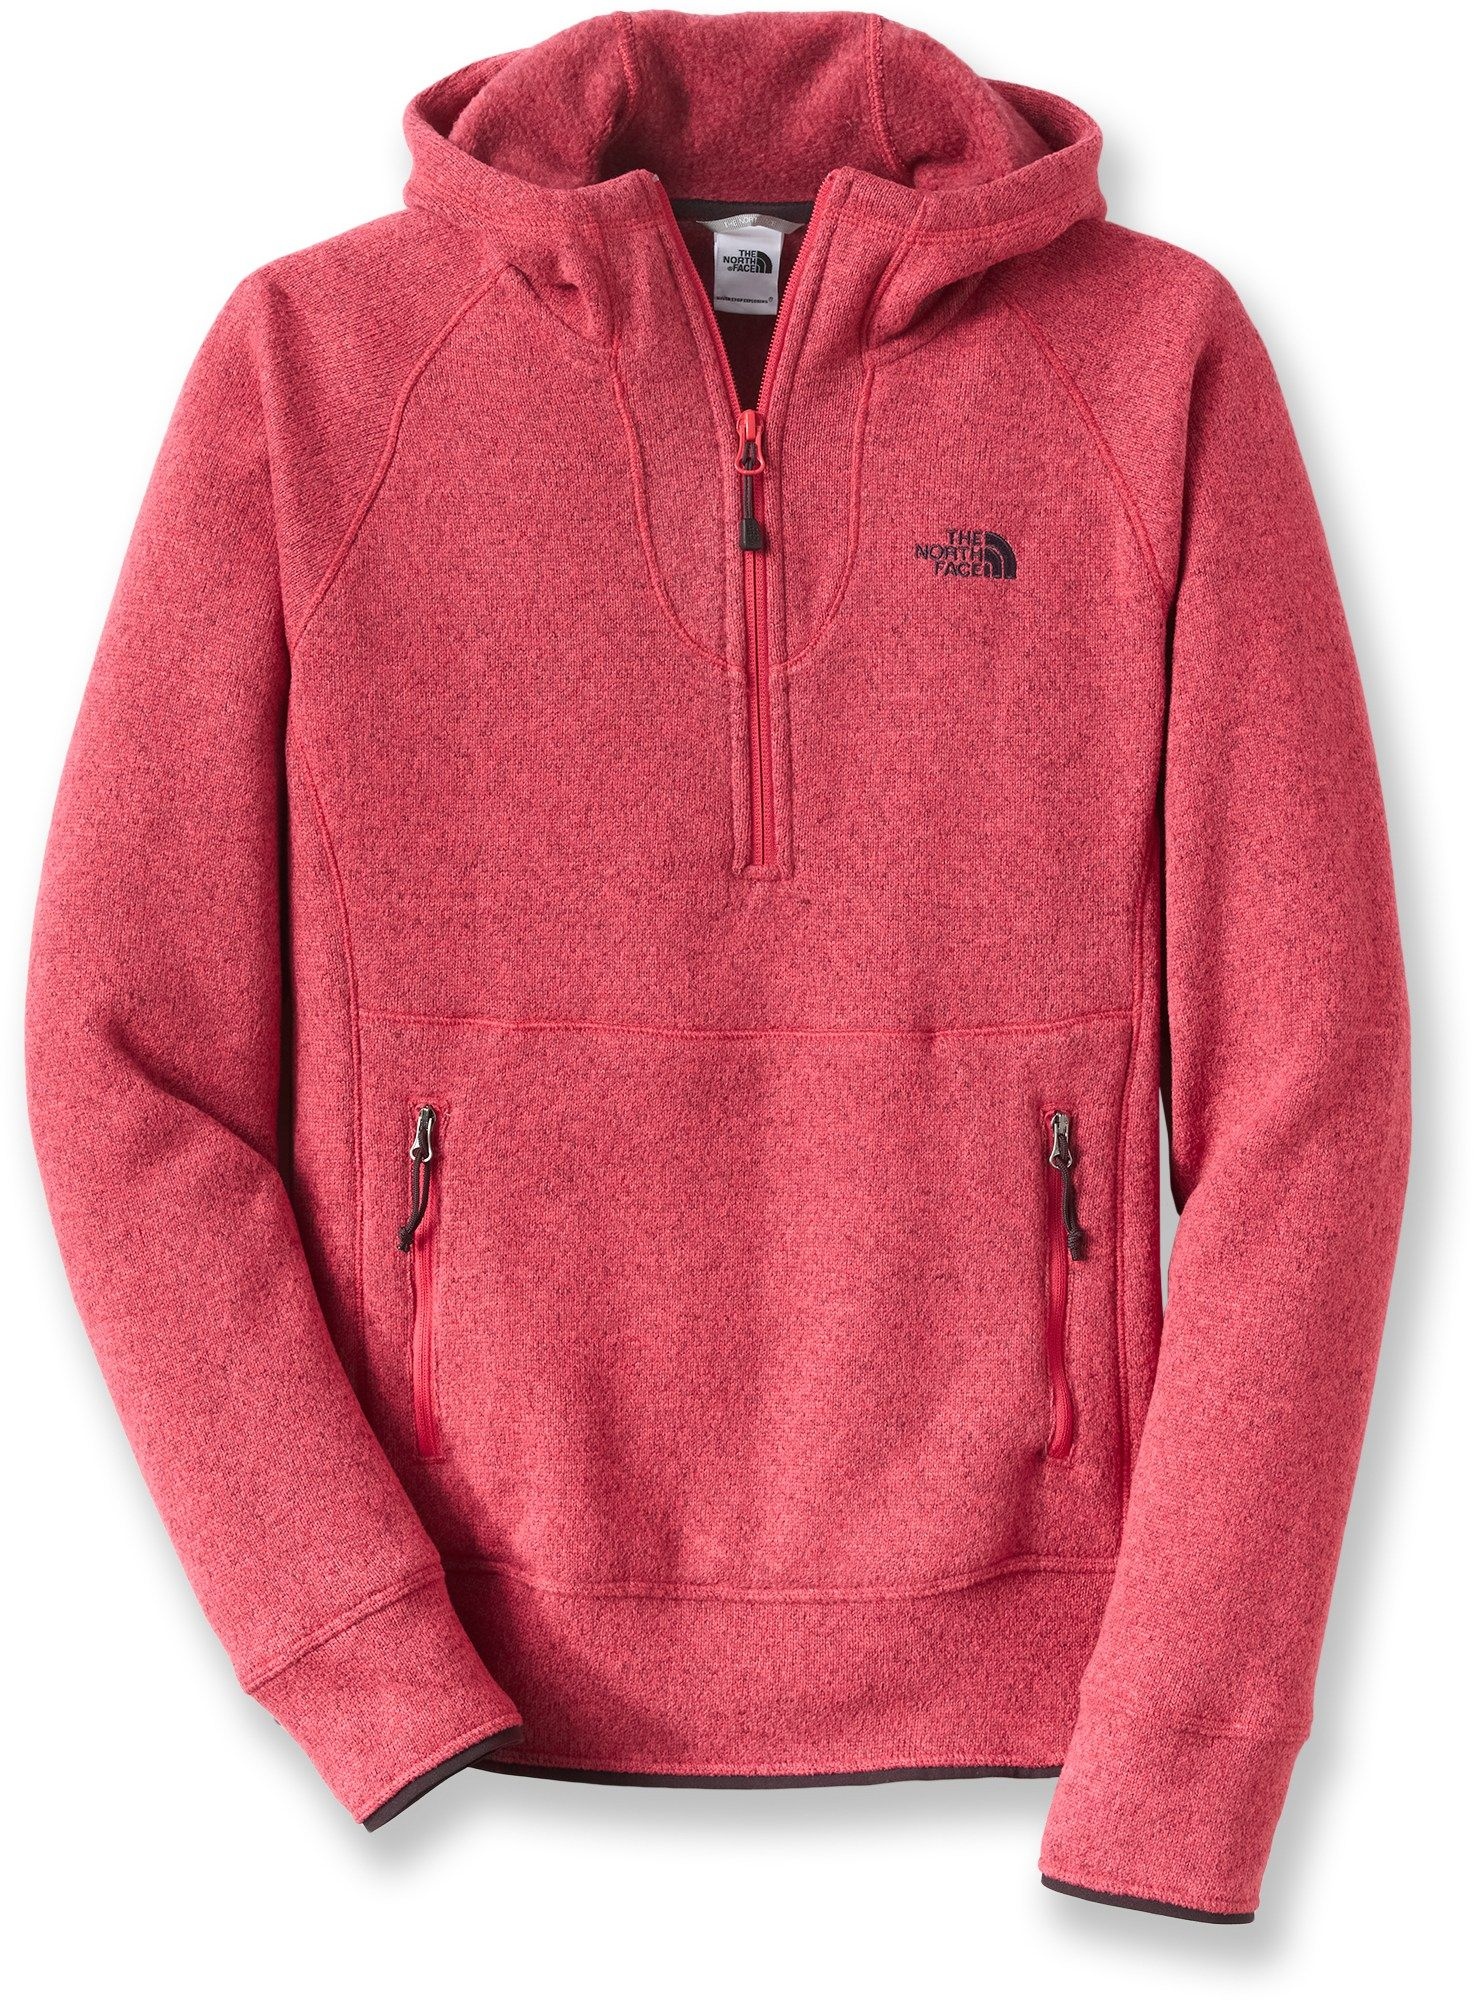 The North Face Crescent Sunshine Hoodie - Women\'s - Free Shipping at ...